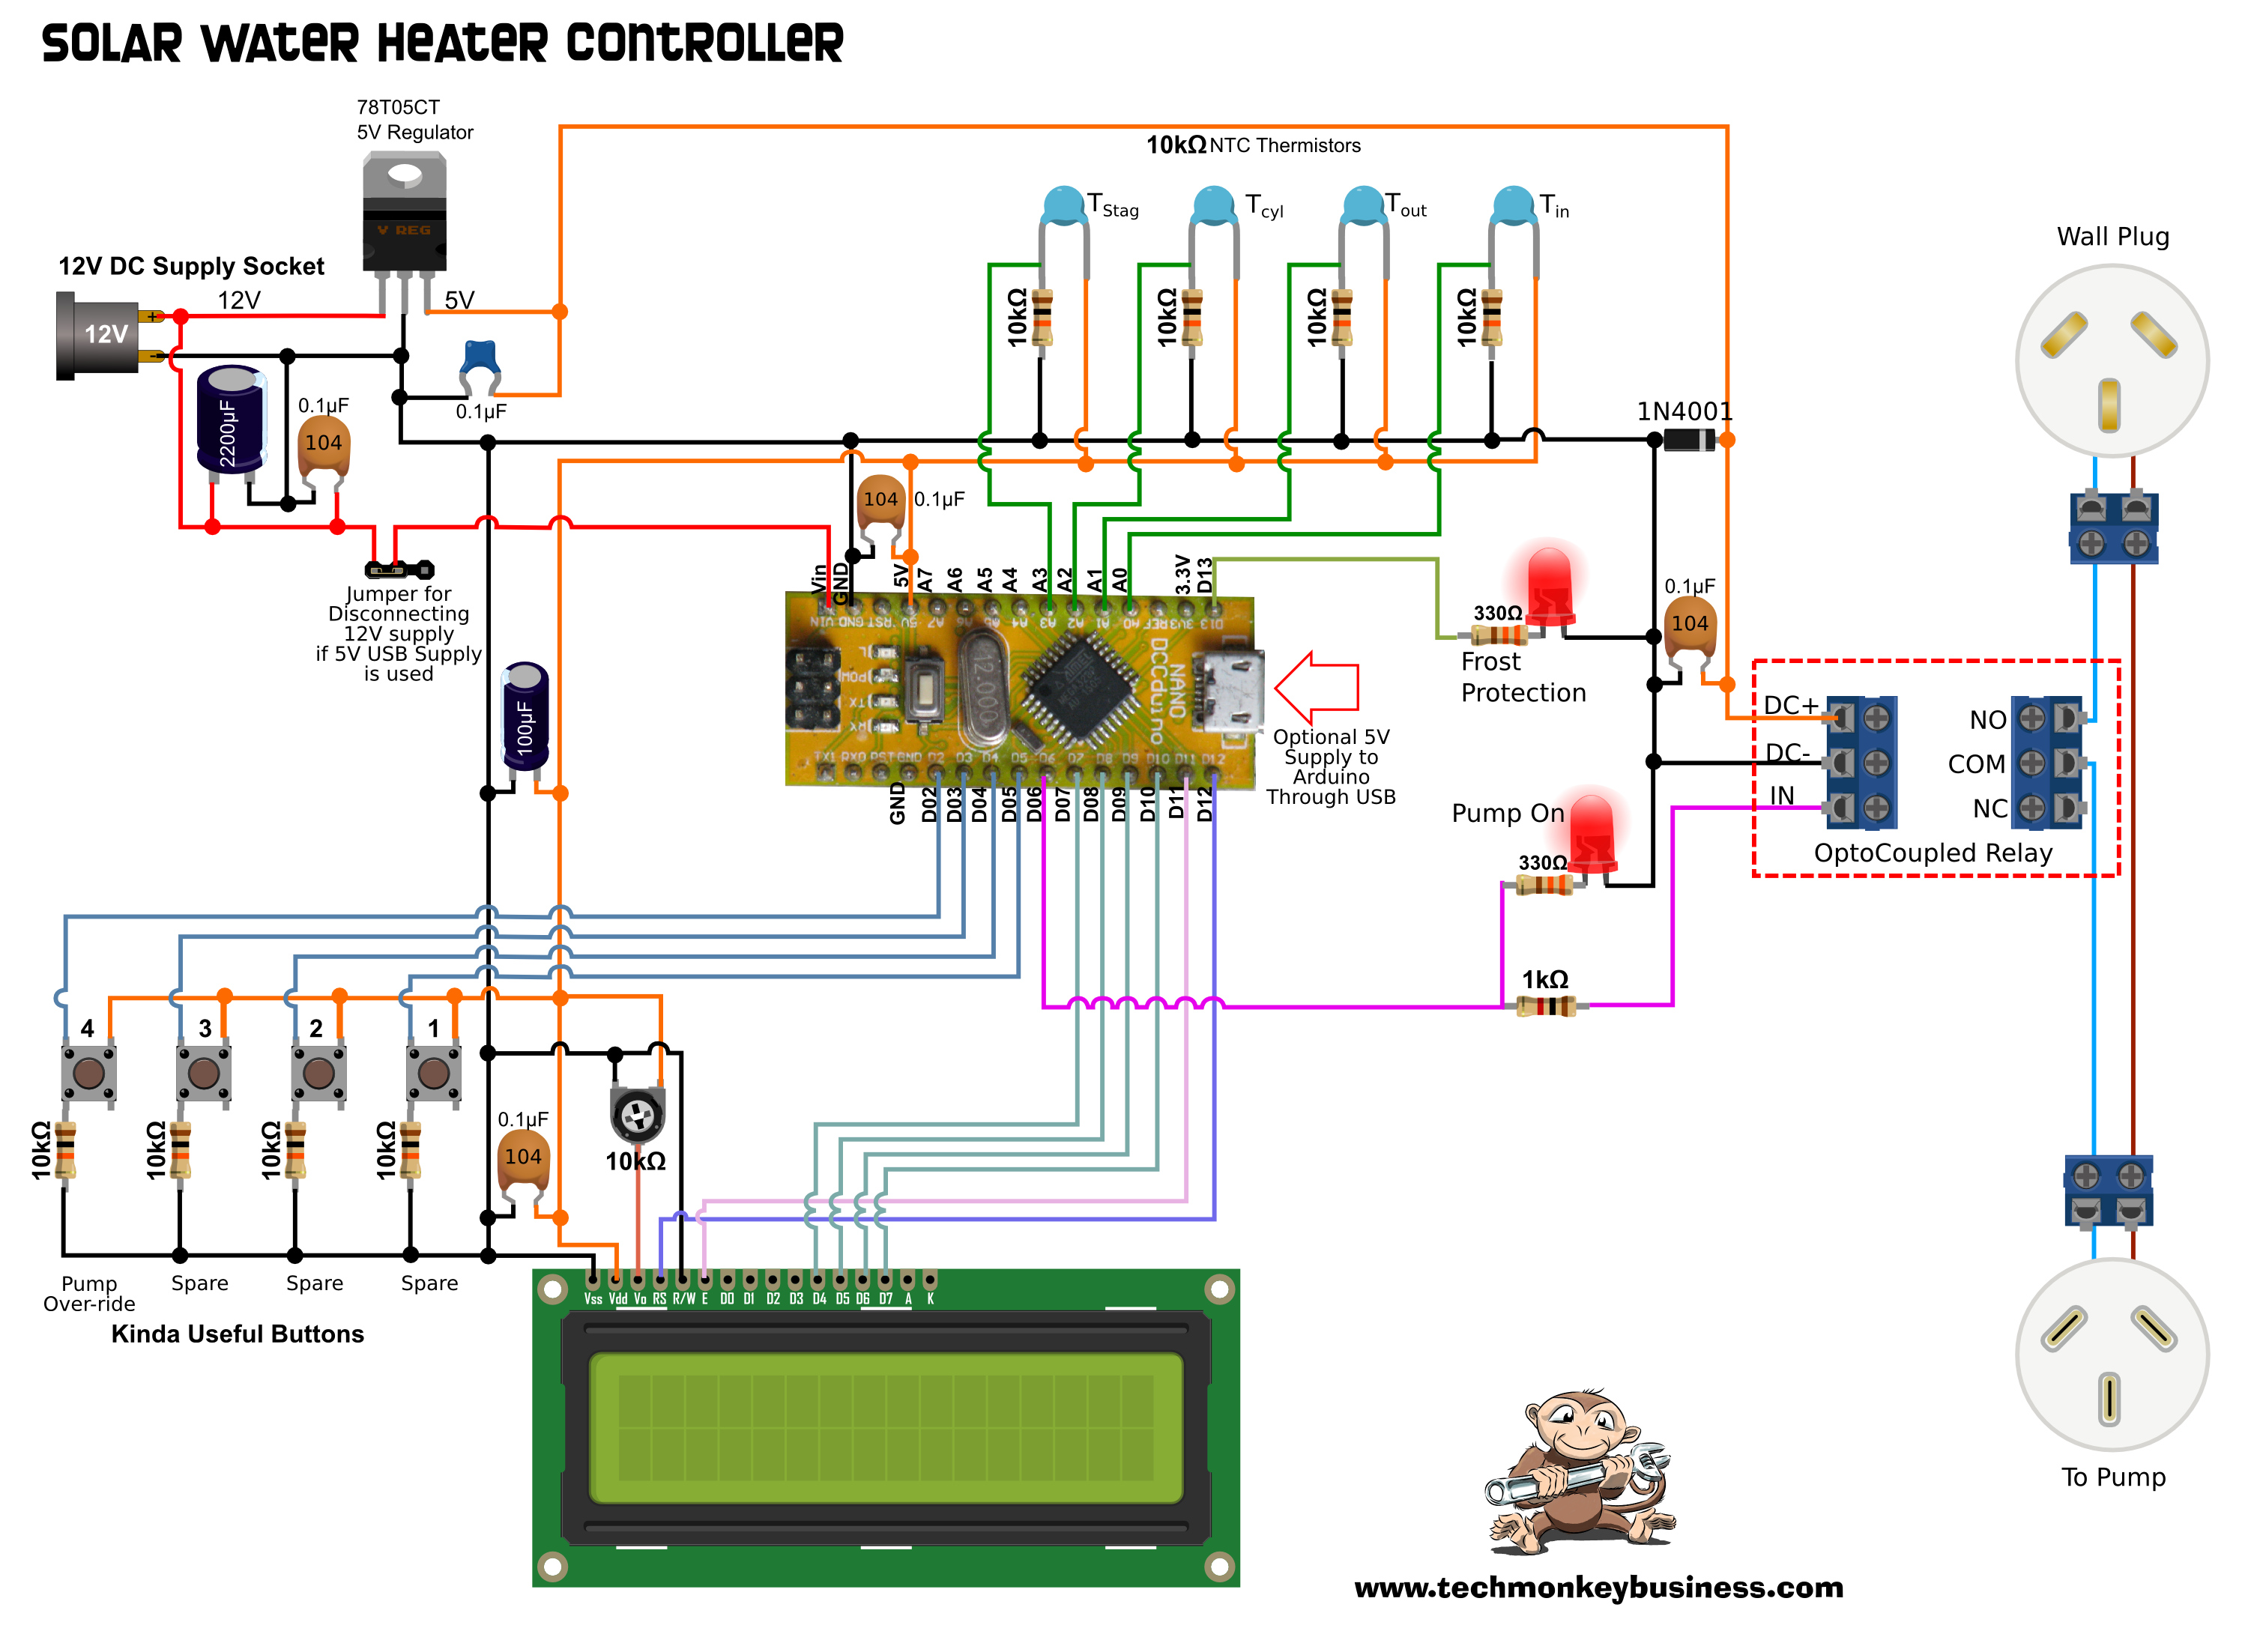 The Solar Water Heater Controller In Real World Fantastic Item For Testing 6 12v Circuits Circuit Schematic